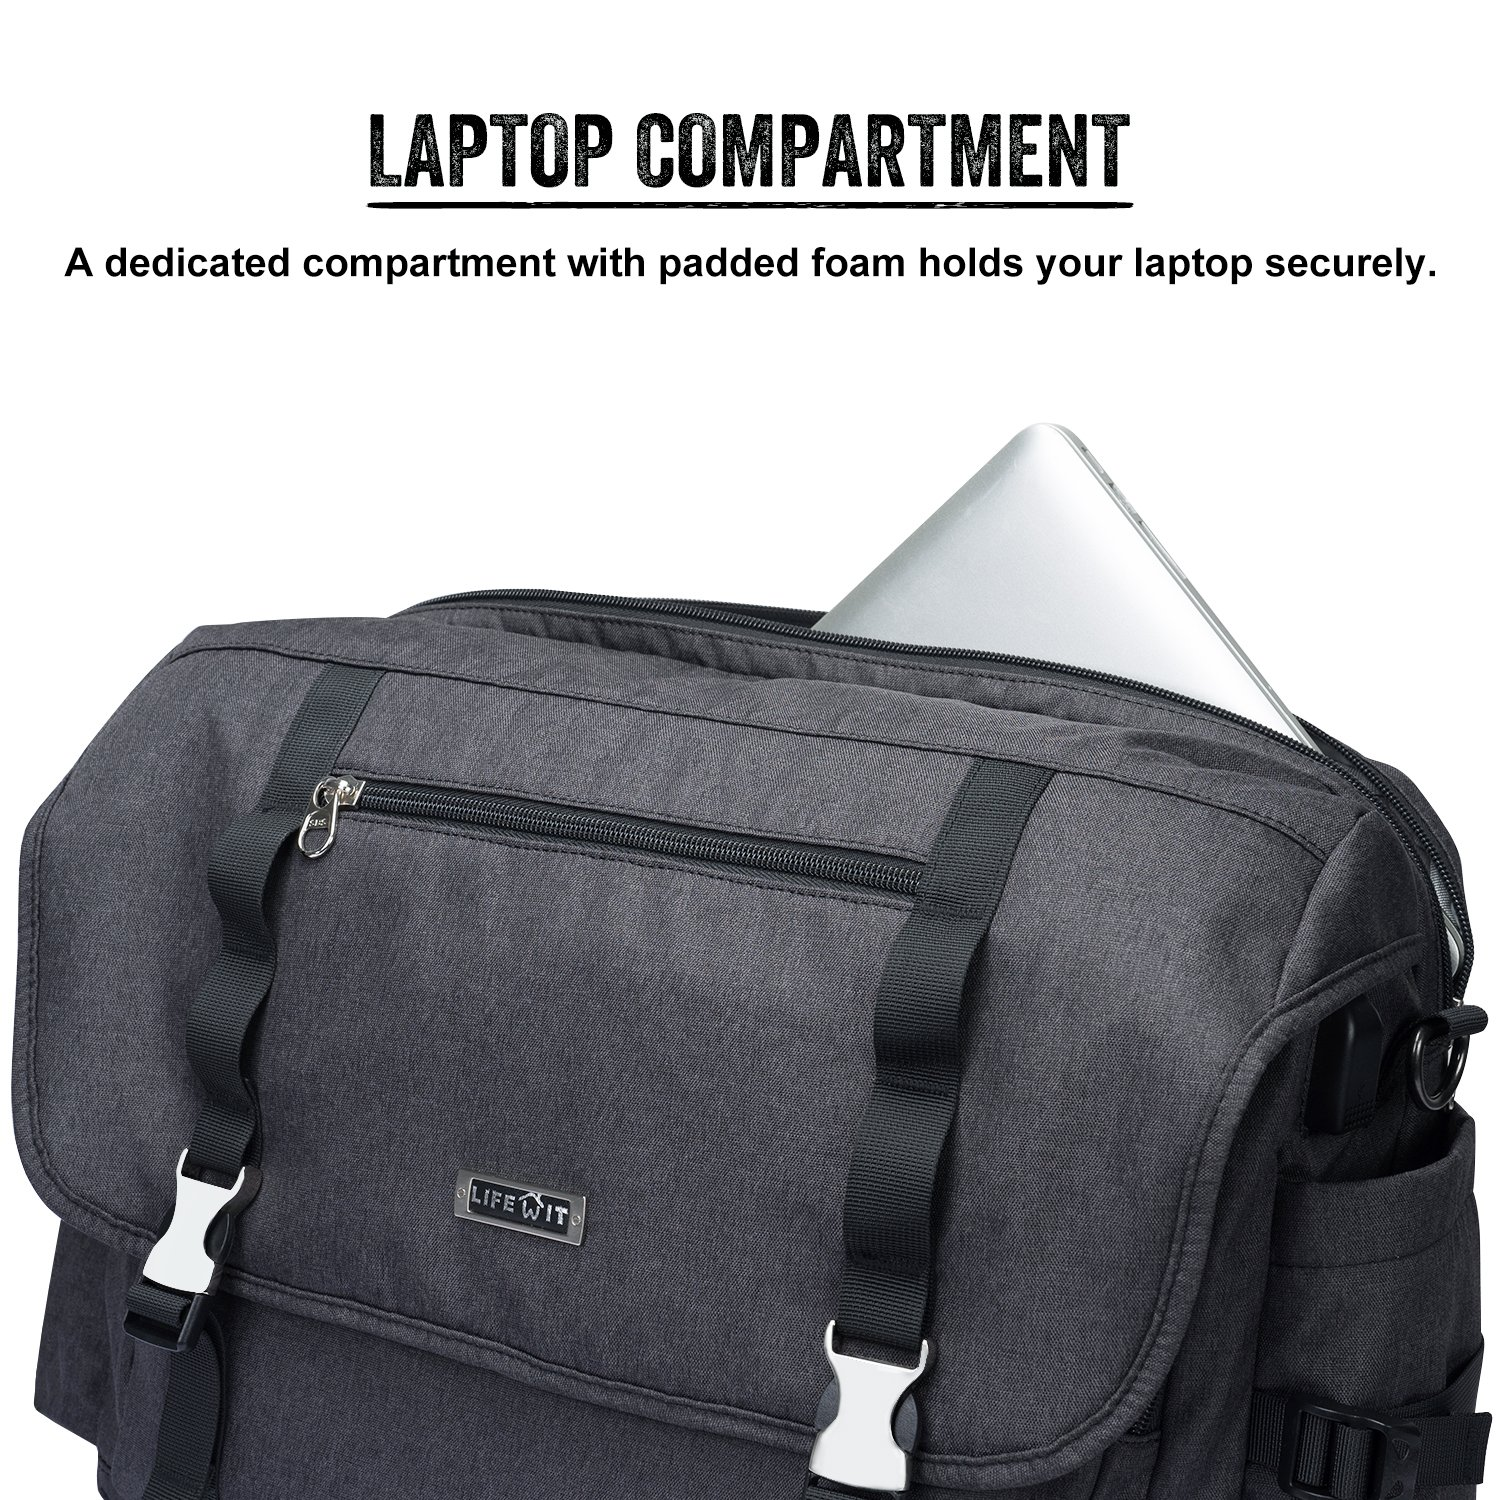 Lifewit 15.6 Men's Laptop and Tablet Bag Expandable Business Messenger Shoulder Bag Case for Macbooks/Ultrabooks/Chromebooks/Notebooks with Handle